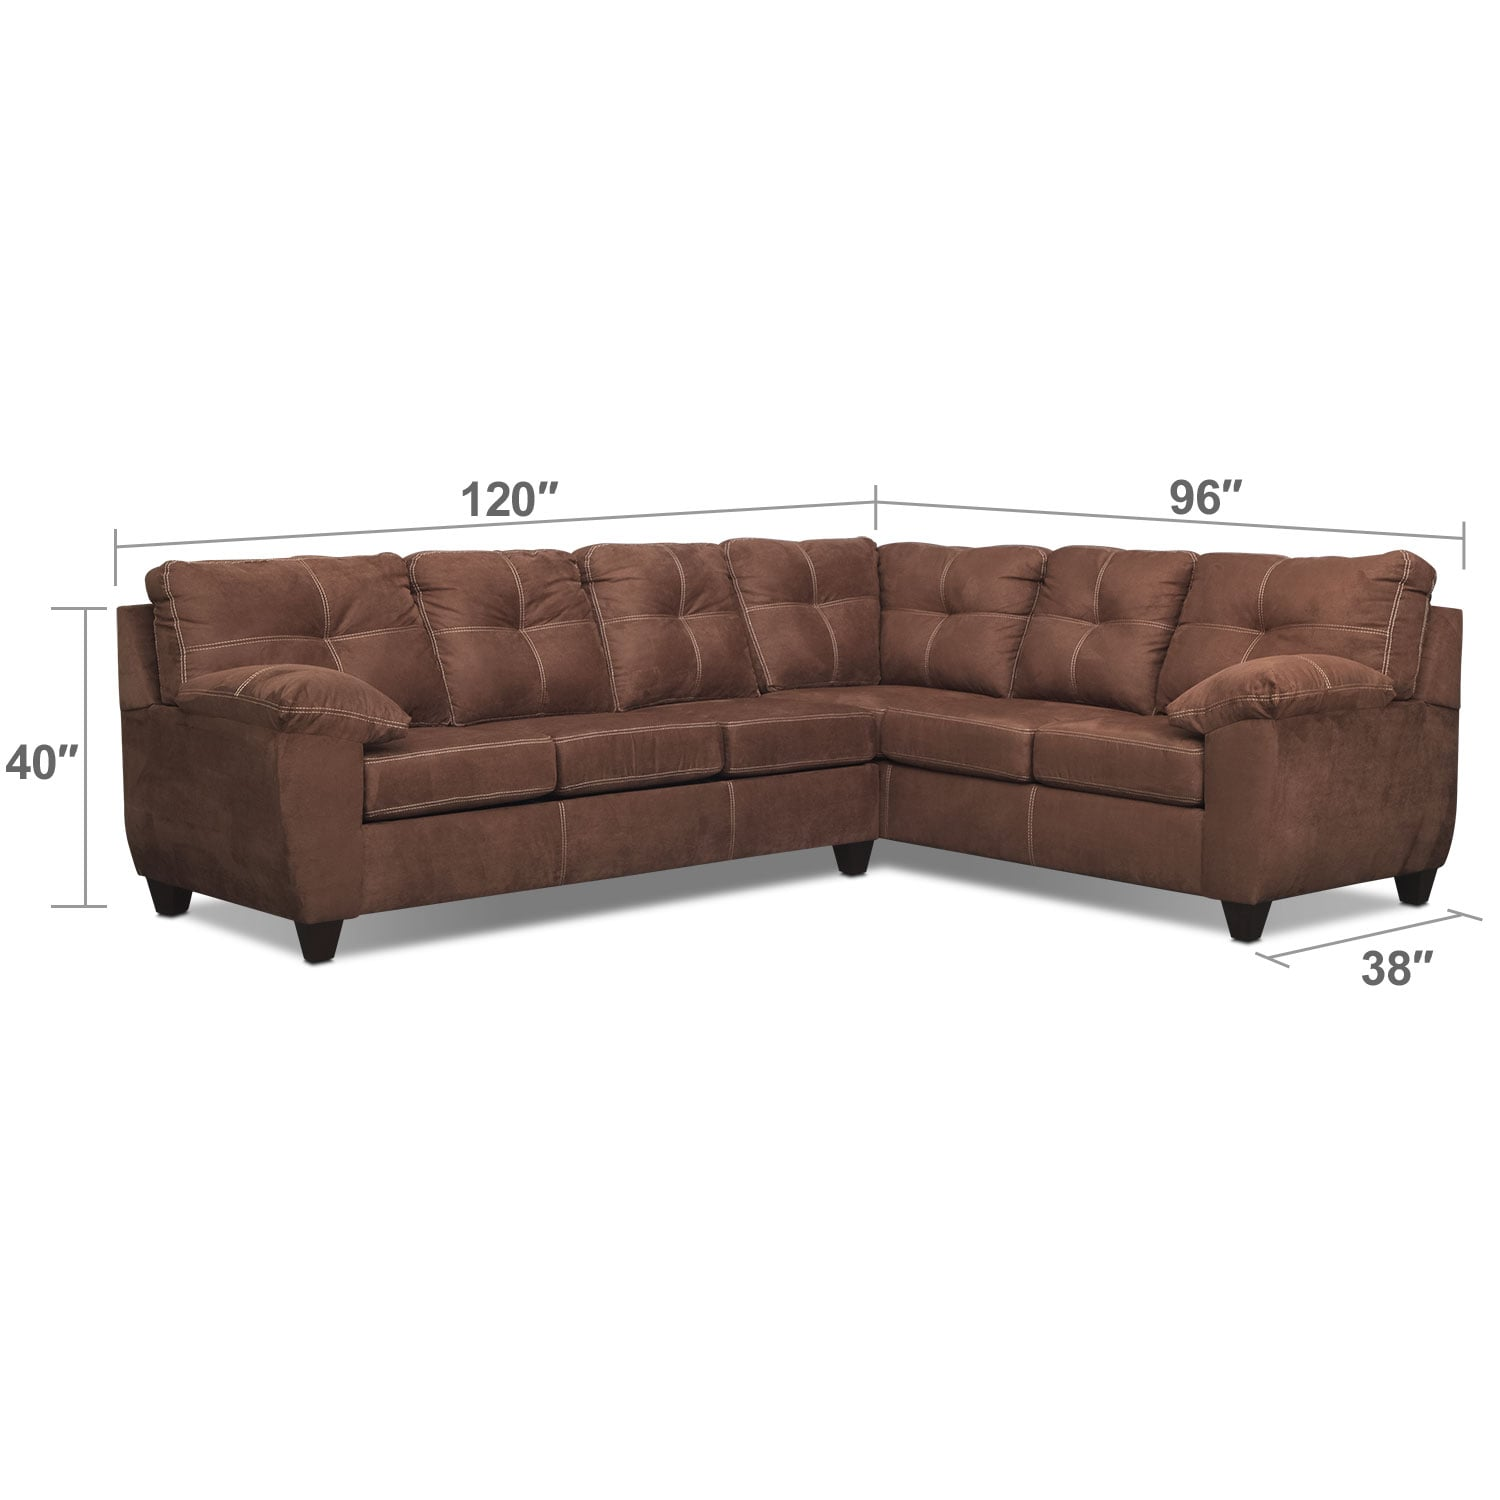 Living Room Furniture - Rialto 2 Pc. Memory Foam Sleeper Sectional with Left-Facing Sofa - Coffee